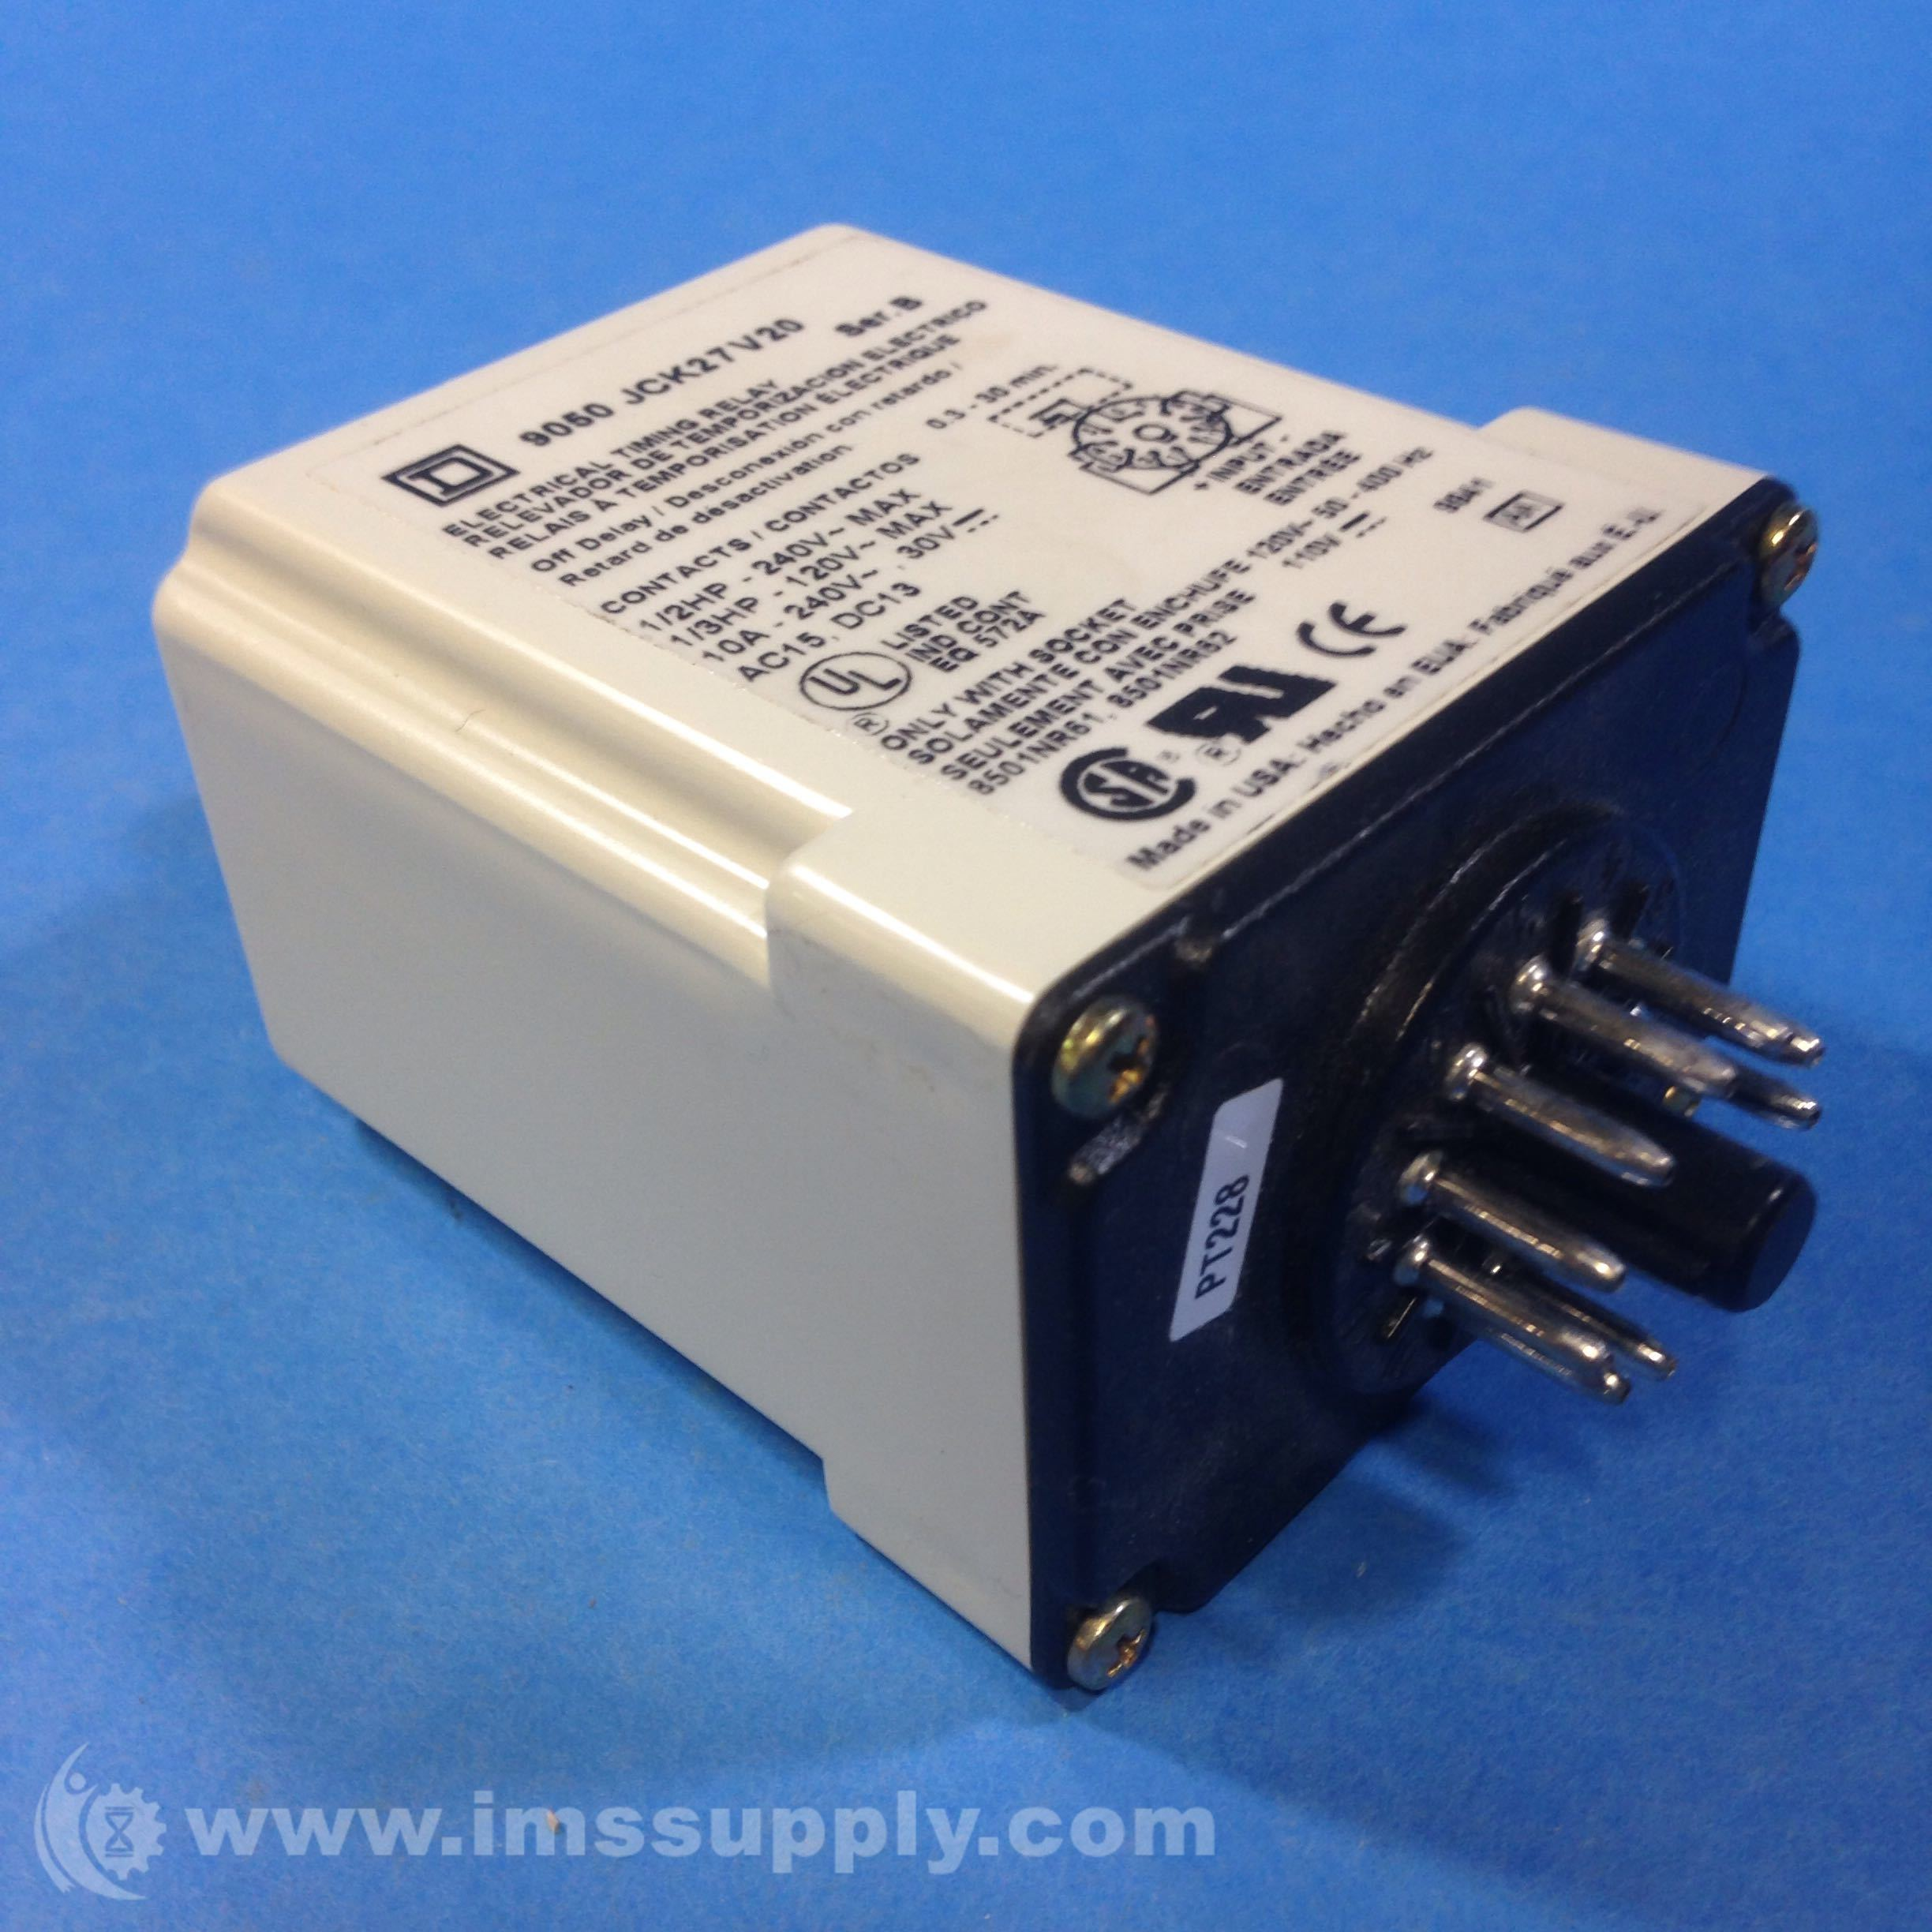 Square D 9050 JCK17V20 Timer Relay 240VAC 10AMP - IMS Supply on